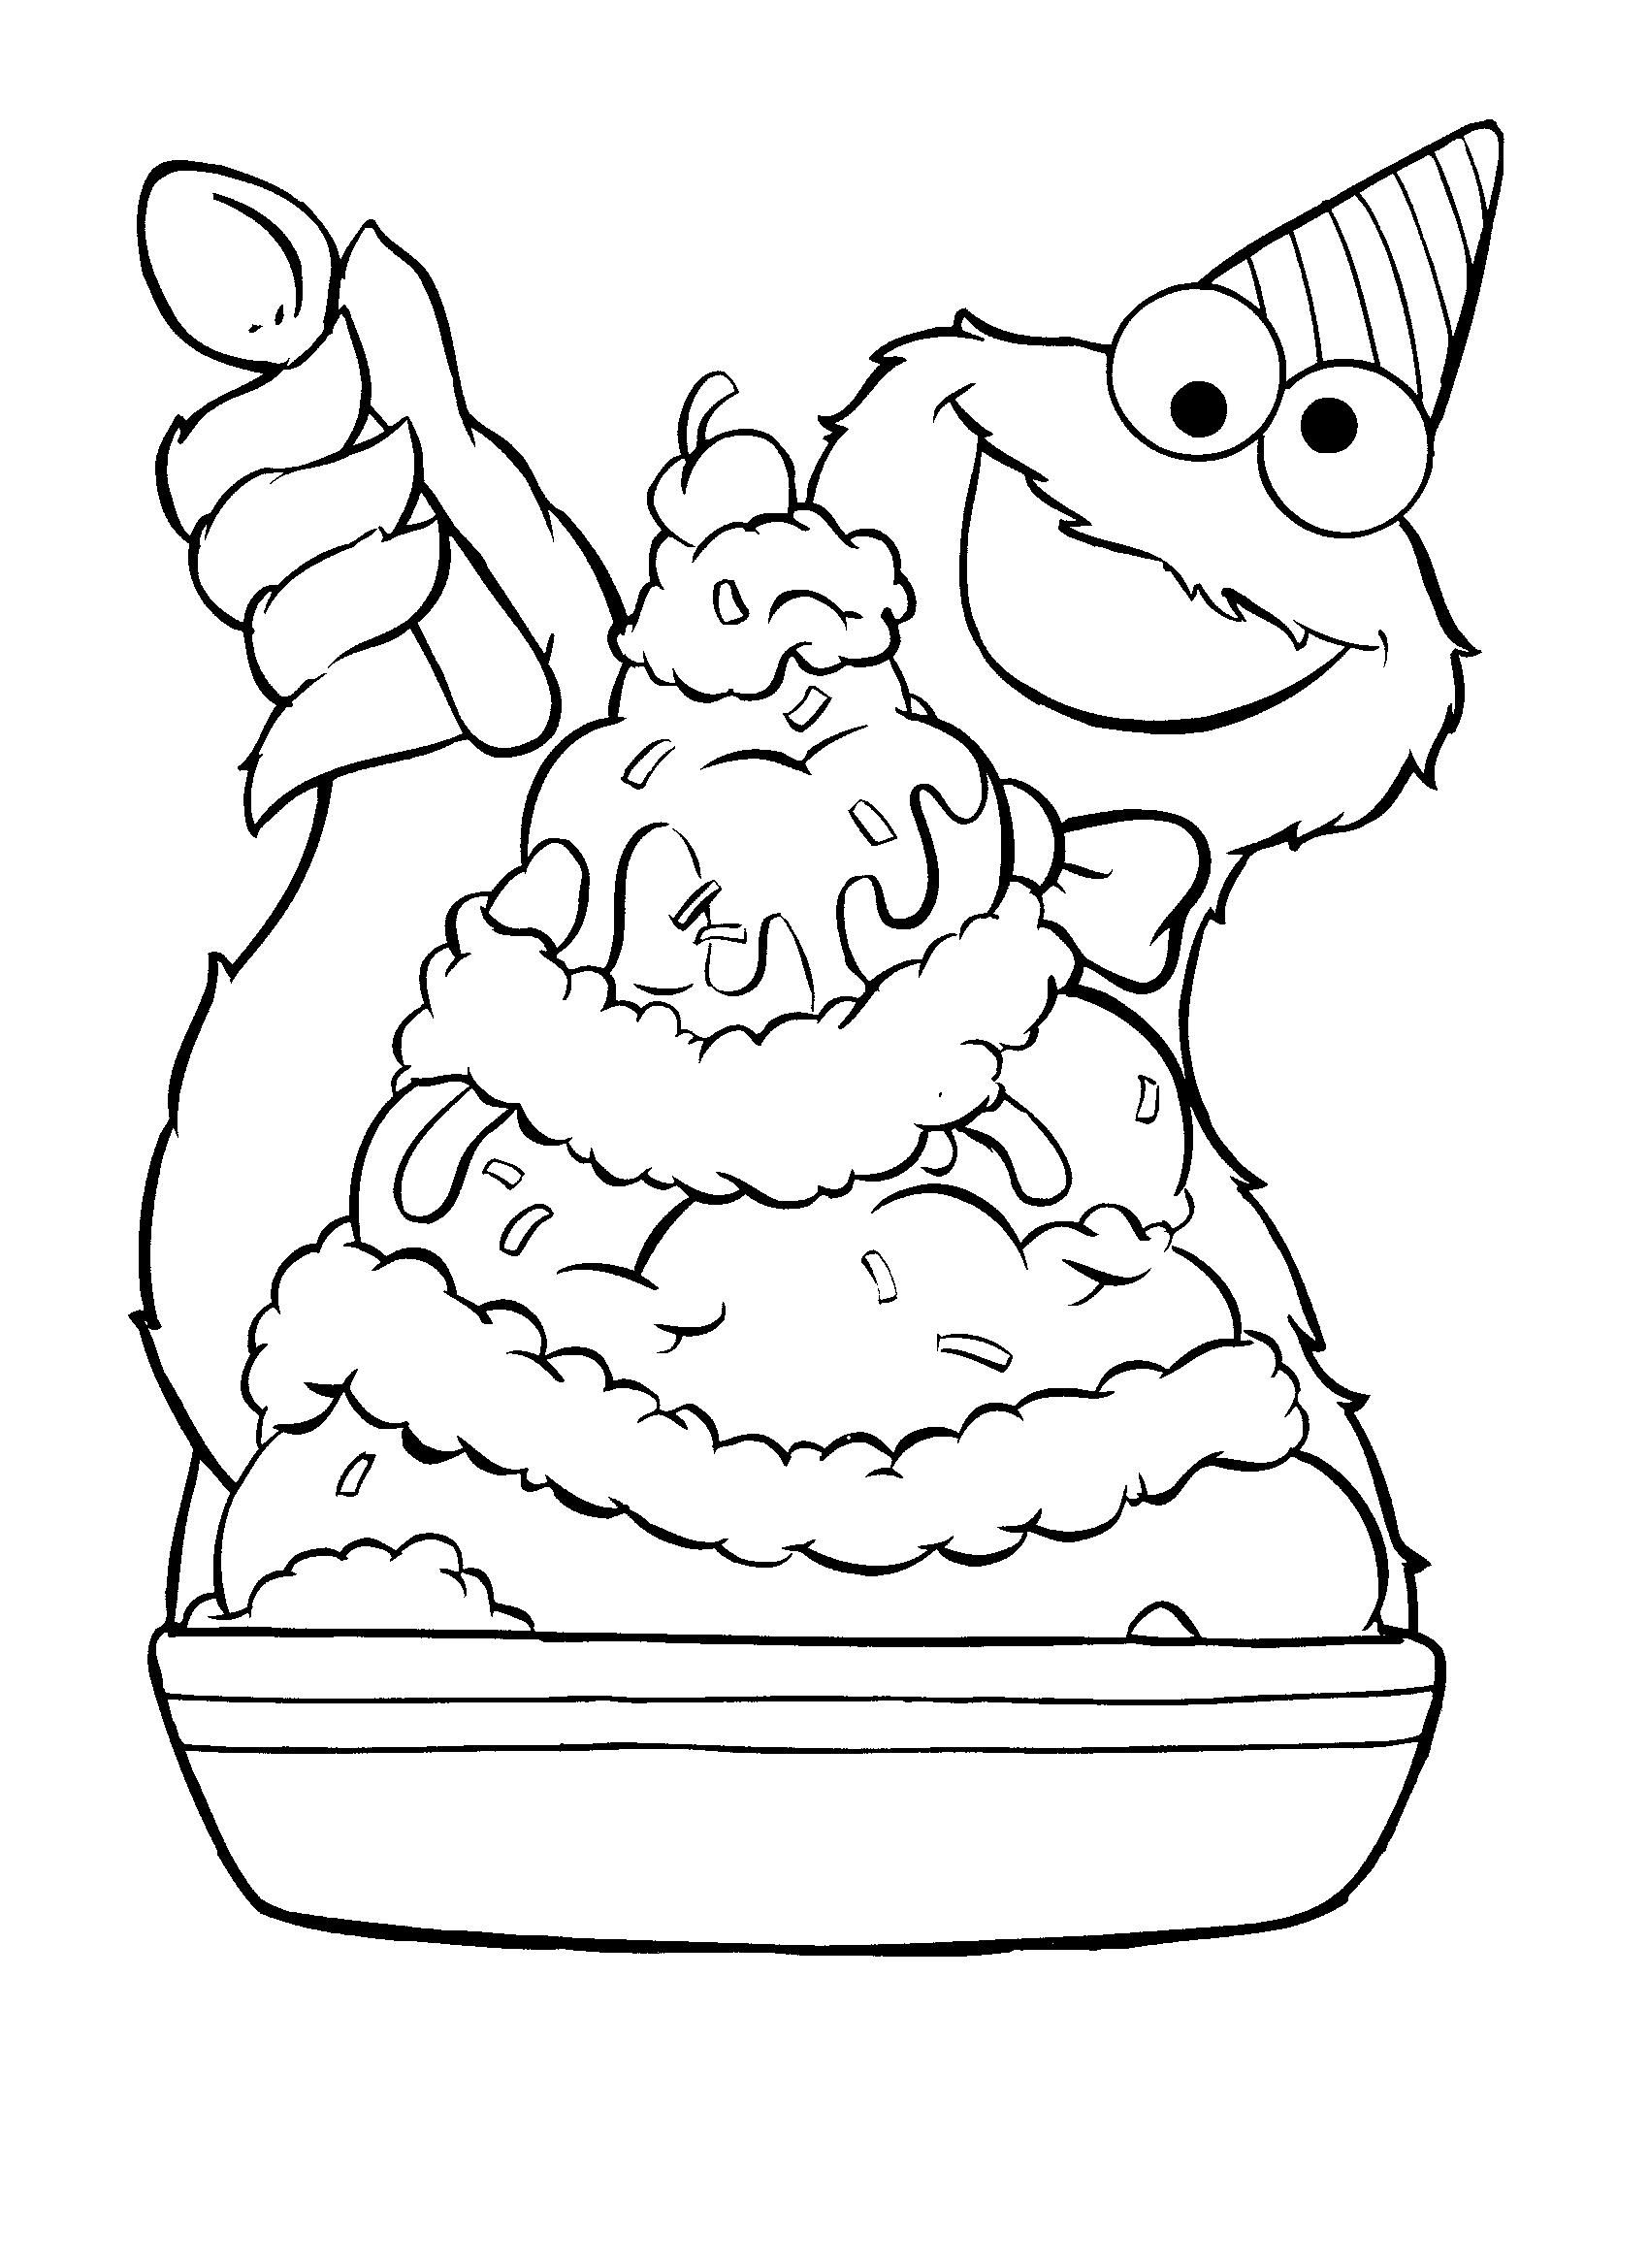 Cookie Monster Ice Cream Sundae Coloring Pages Sesame Street Coloring Pages Monster Coloring Pages Birthday Coloring Pages